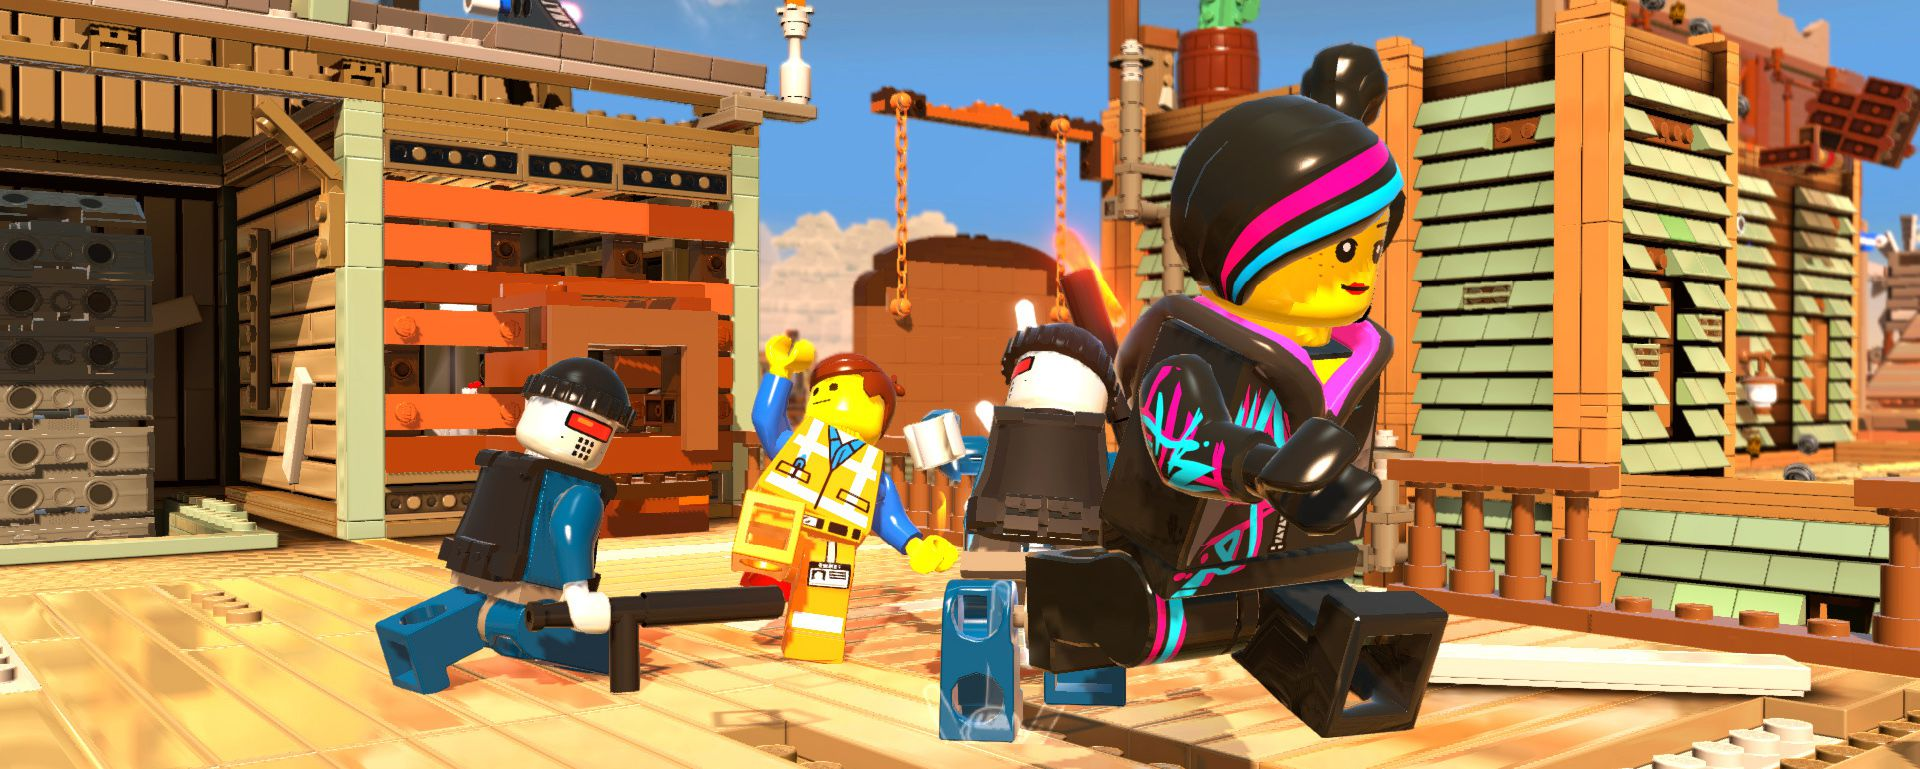 Publicity still for The LEGO Movie Videogame